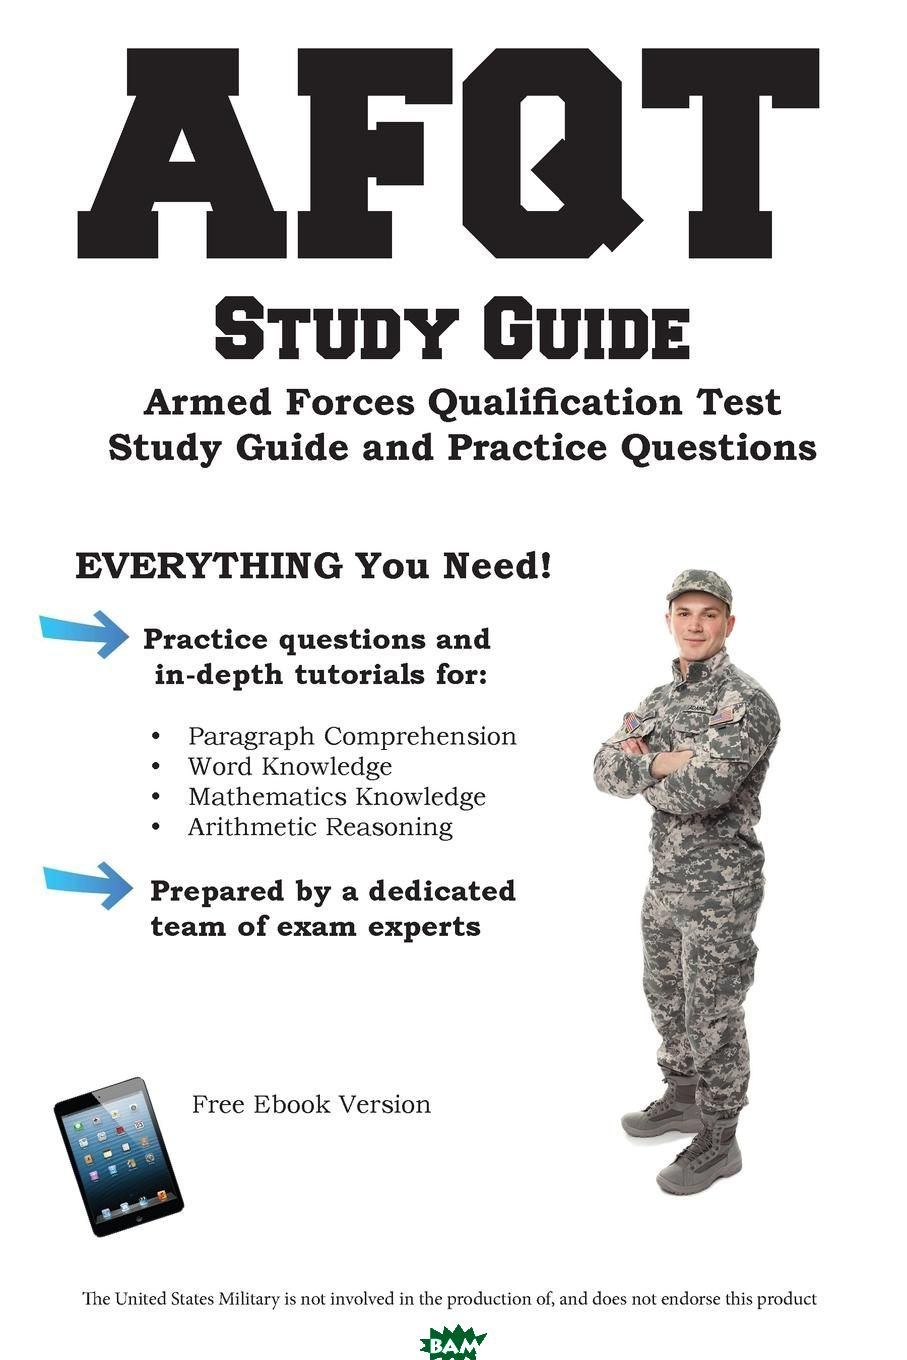 AFQT Study Guide. Armed Forces Qualification Test Study Guide and Practice Questions